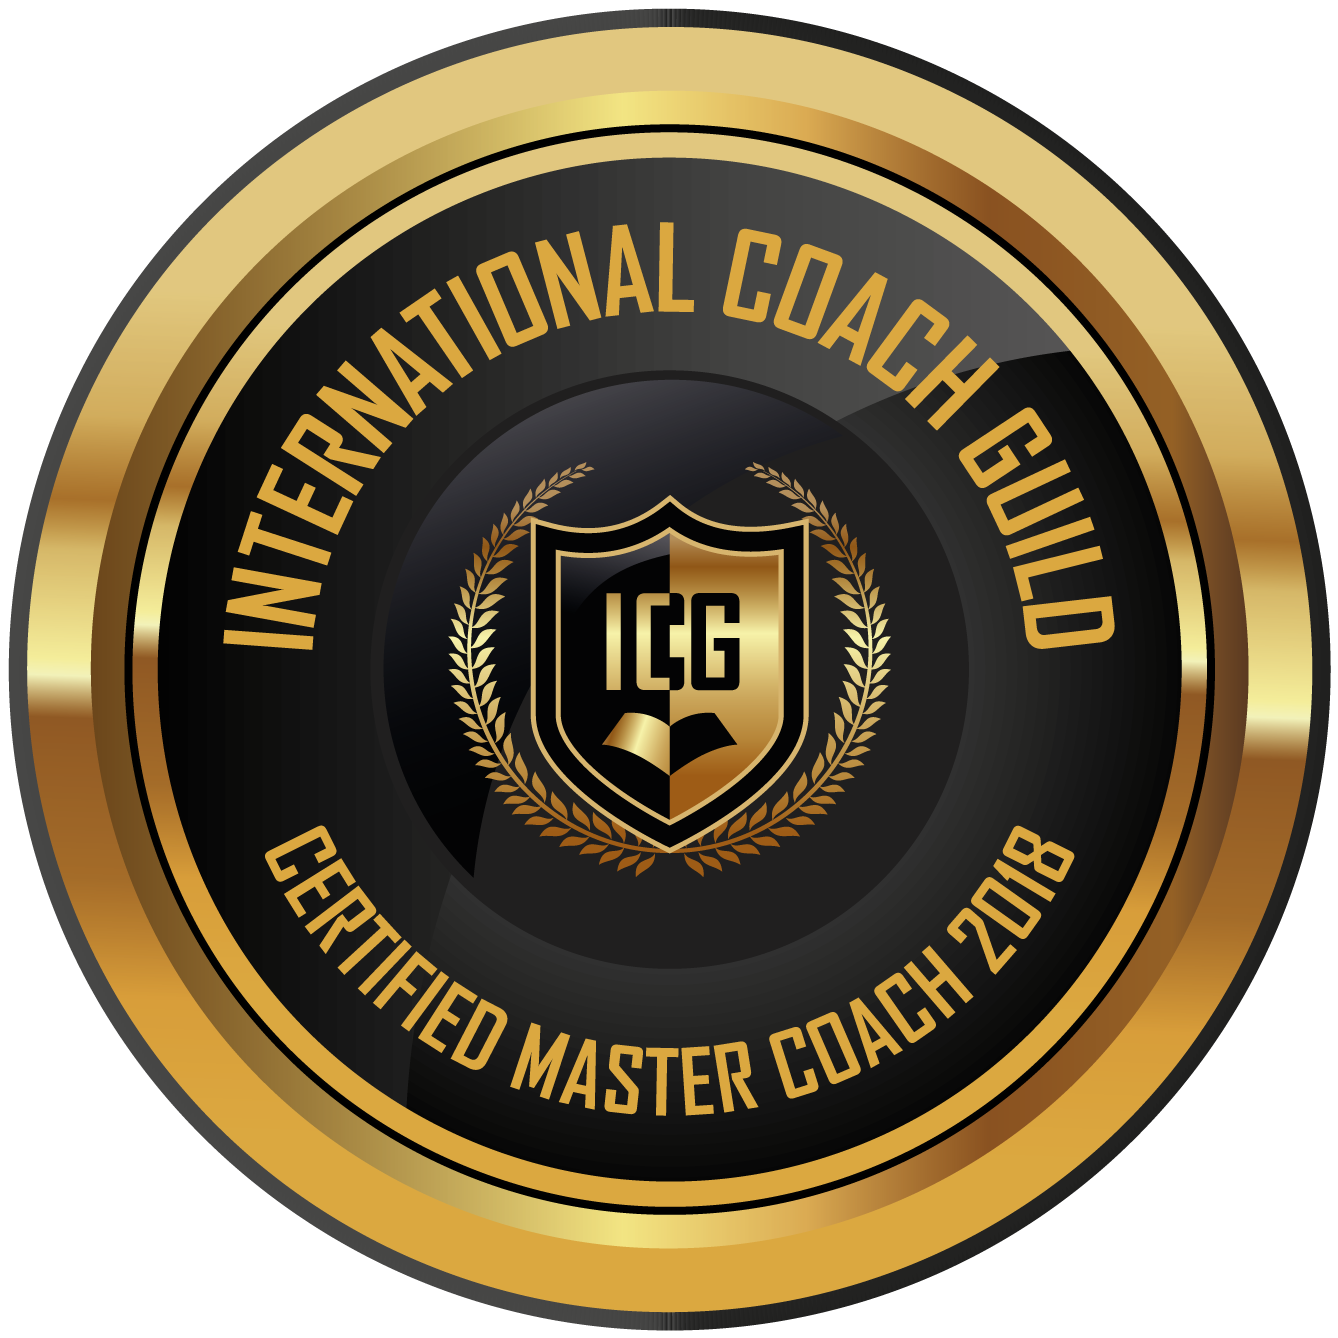 ICG Certified Master Coach 2018 Members Badge High Resolution